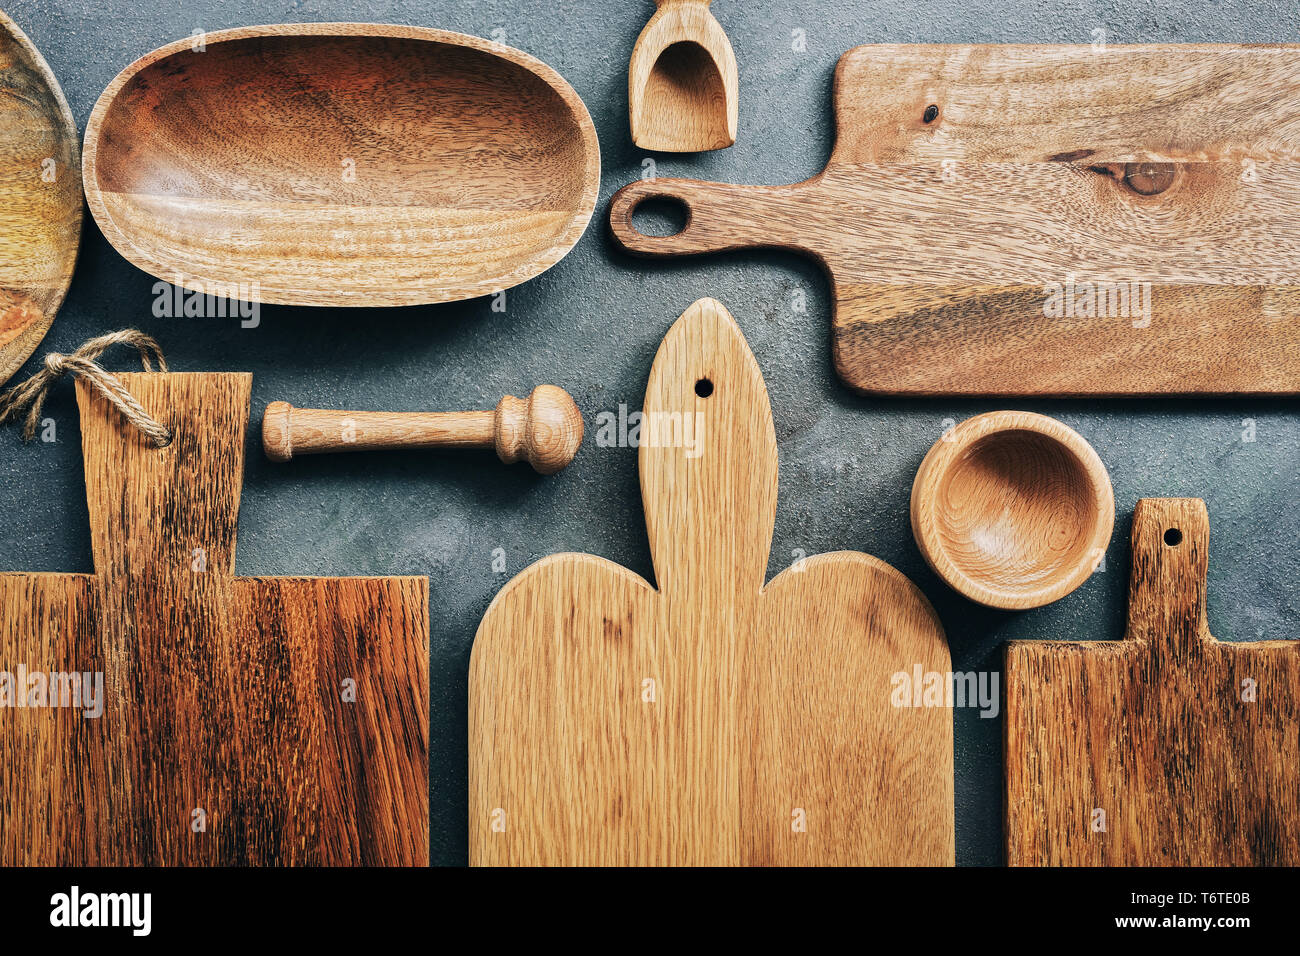 Creative layout set of wooden kitchen utensils, cutting boards, bowl, plate, mortar and pestle, scoop. Flat lay, top view - Stock Image